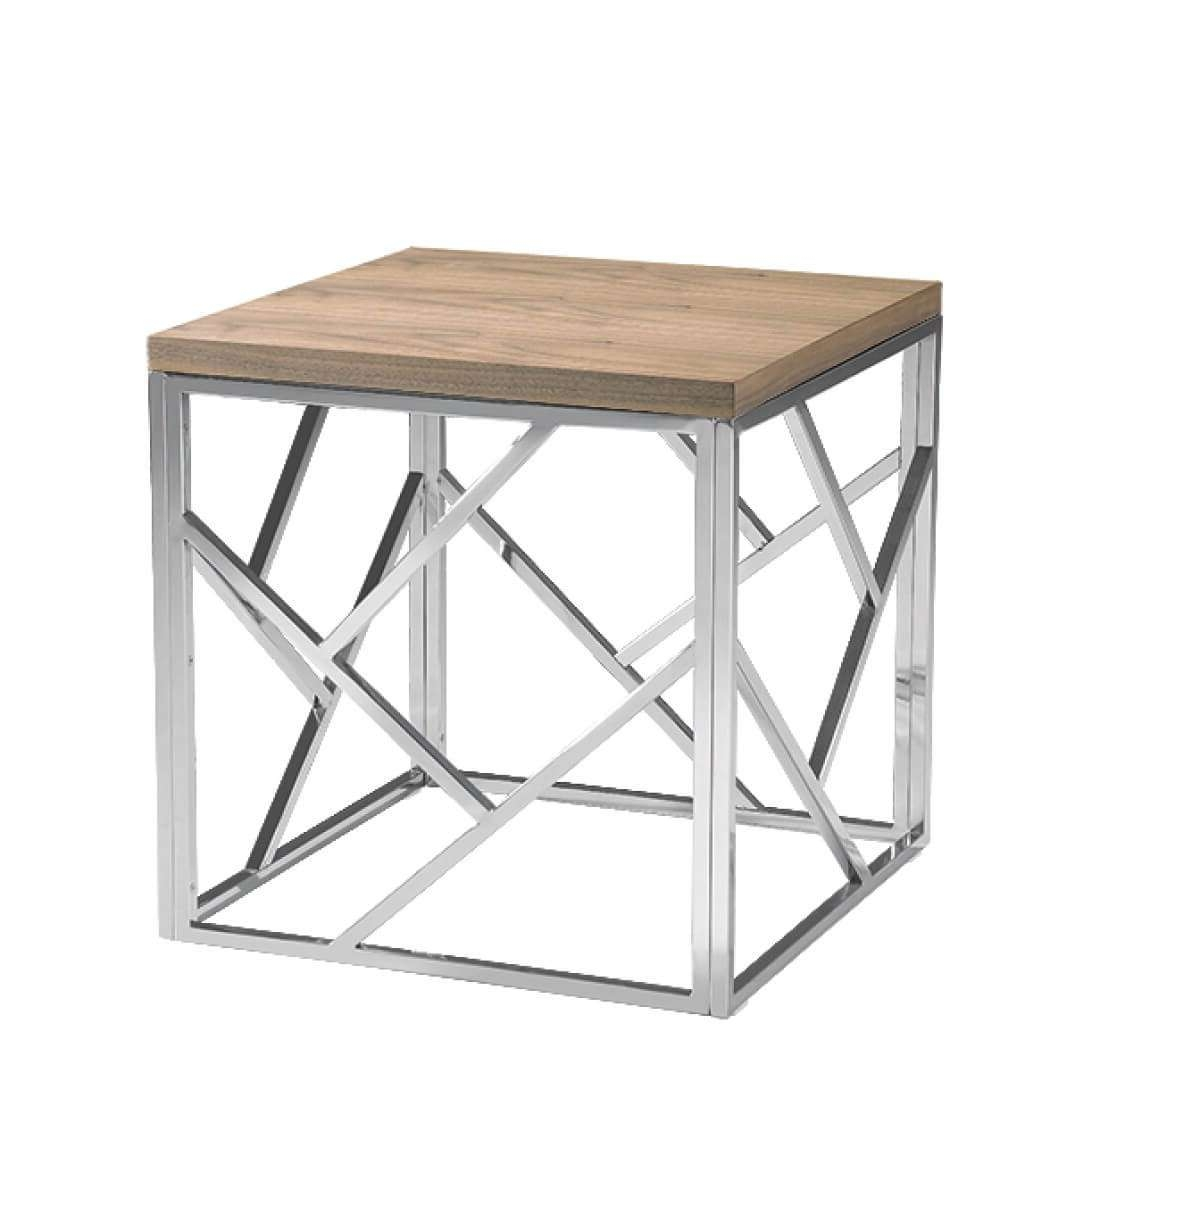 Modern Furniture • Brickell Collection Regarding Most Current Wood Chrome Coffee Tables (View 9 of 20)